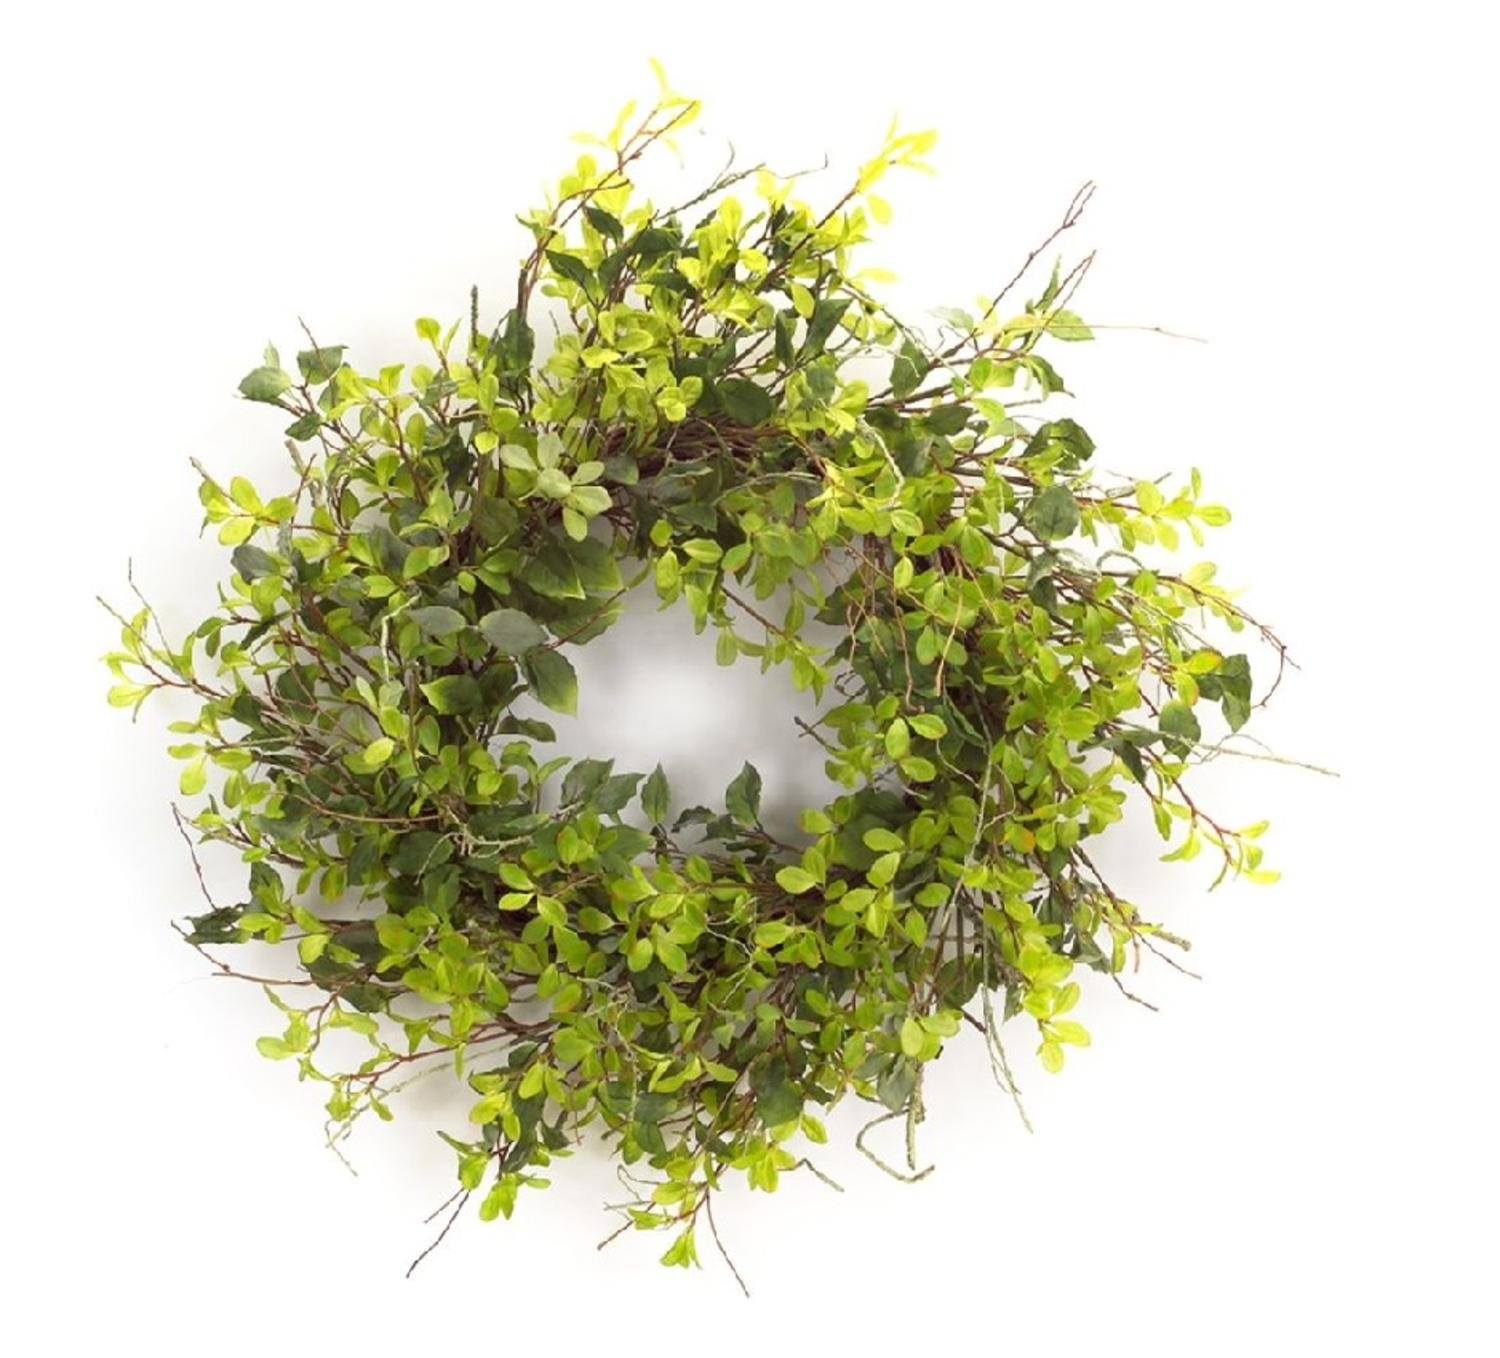 Melrose Pack of 2 Oversized Artificial Mixed Green Foliage and Twig Wreath 30'' - Unlit